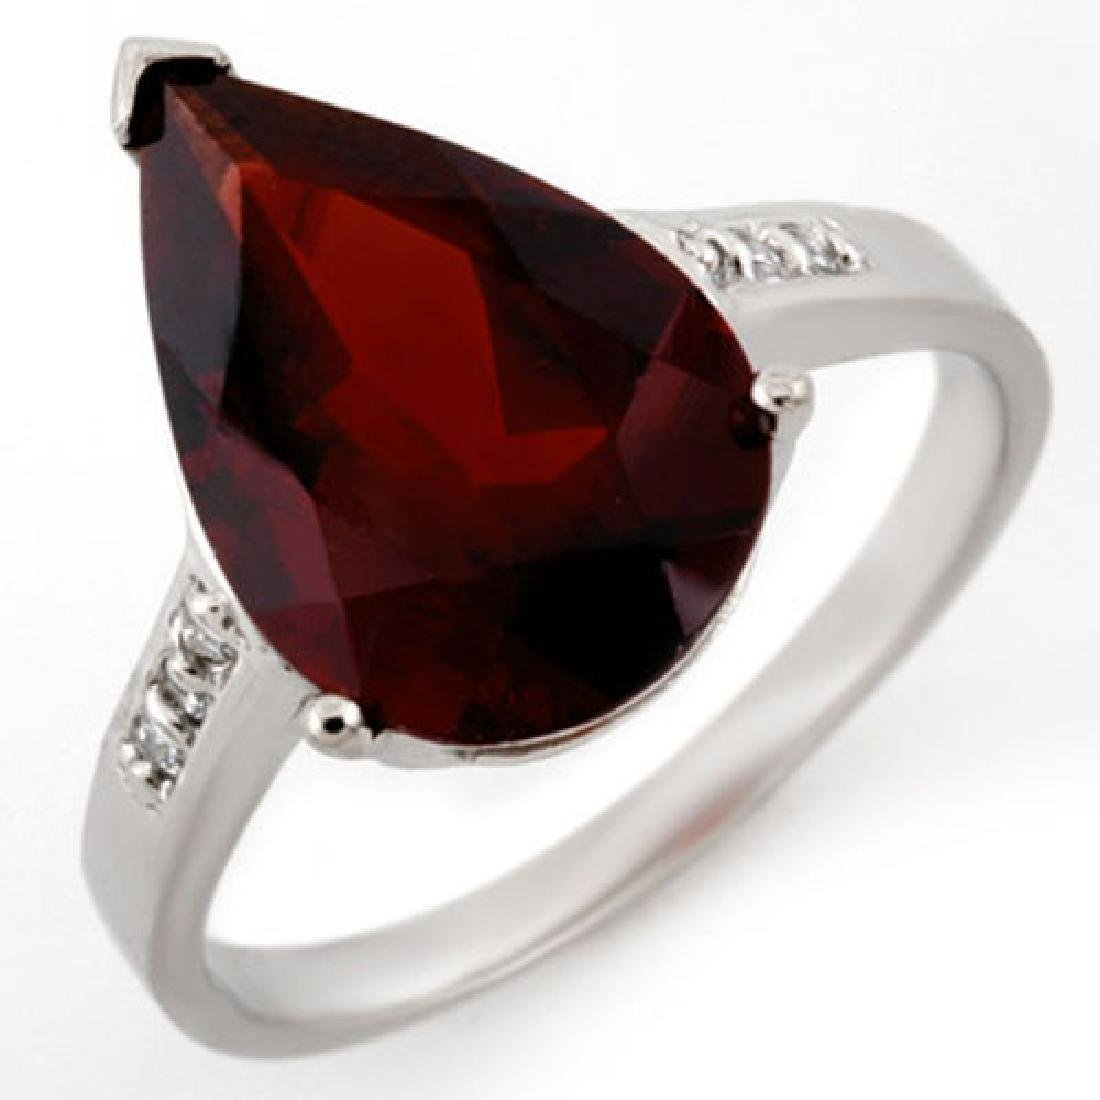 5.10 CTW Garnet & Diamond Ring 10K White Gold